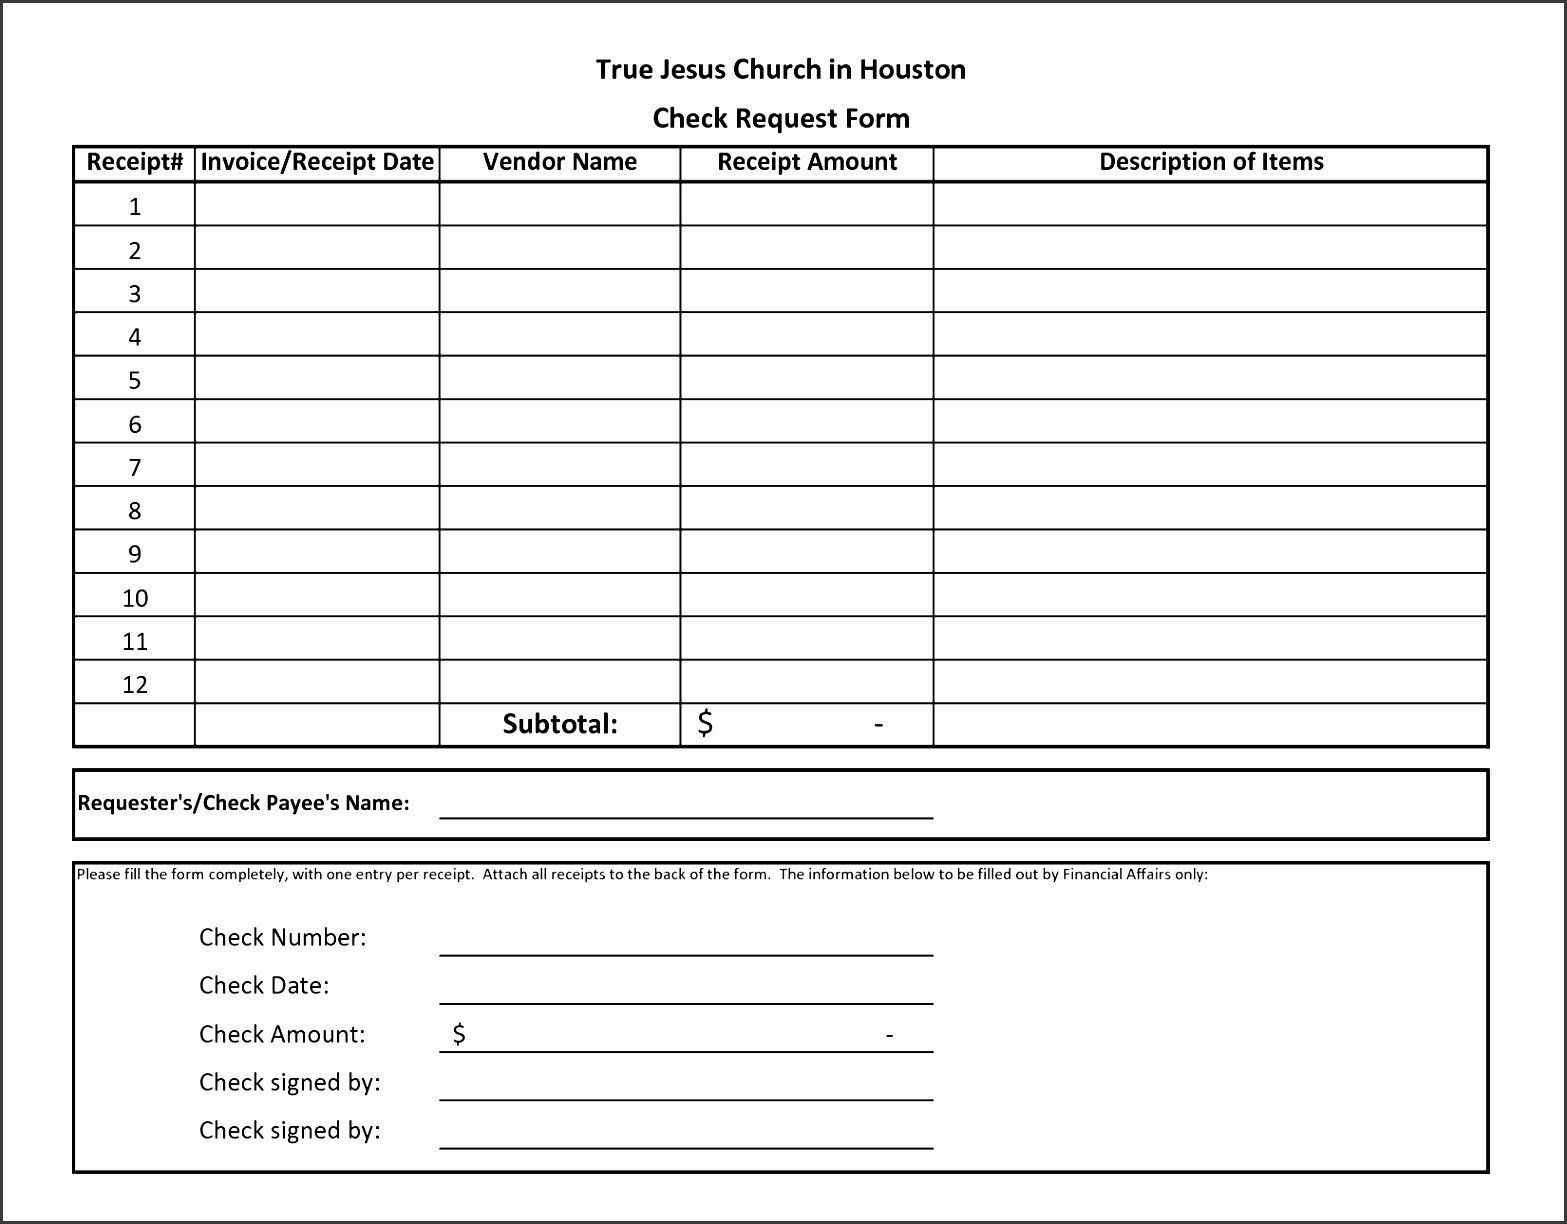 Check Request Form Template Beautiful 10 Check Request Form Template Free Sampletemplatess Invoice Template Sales Template Templates